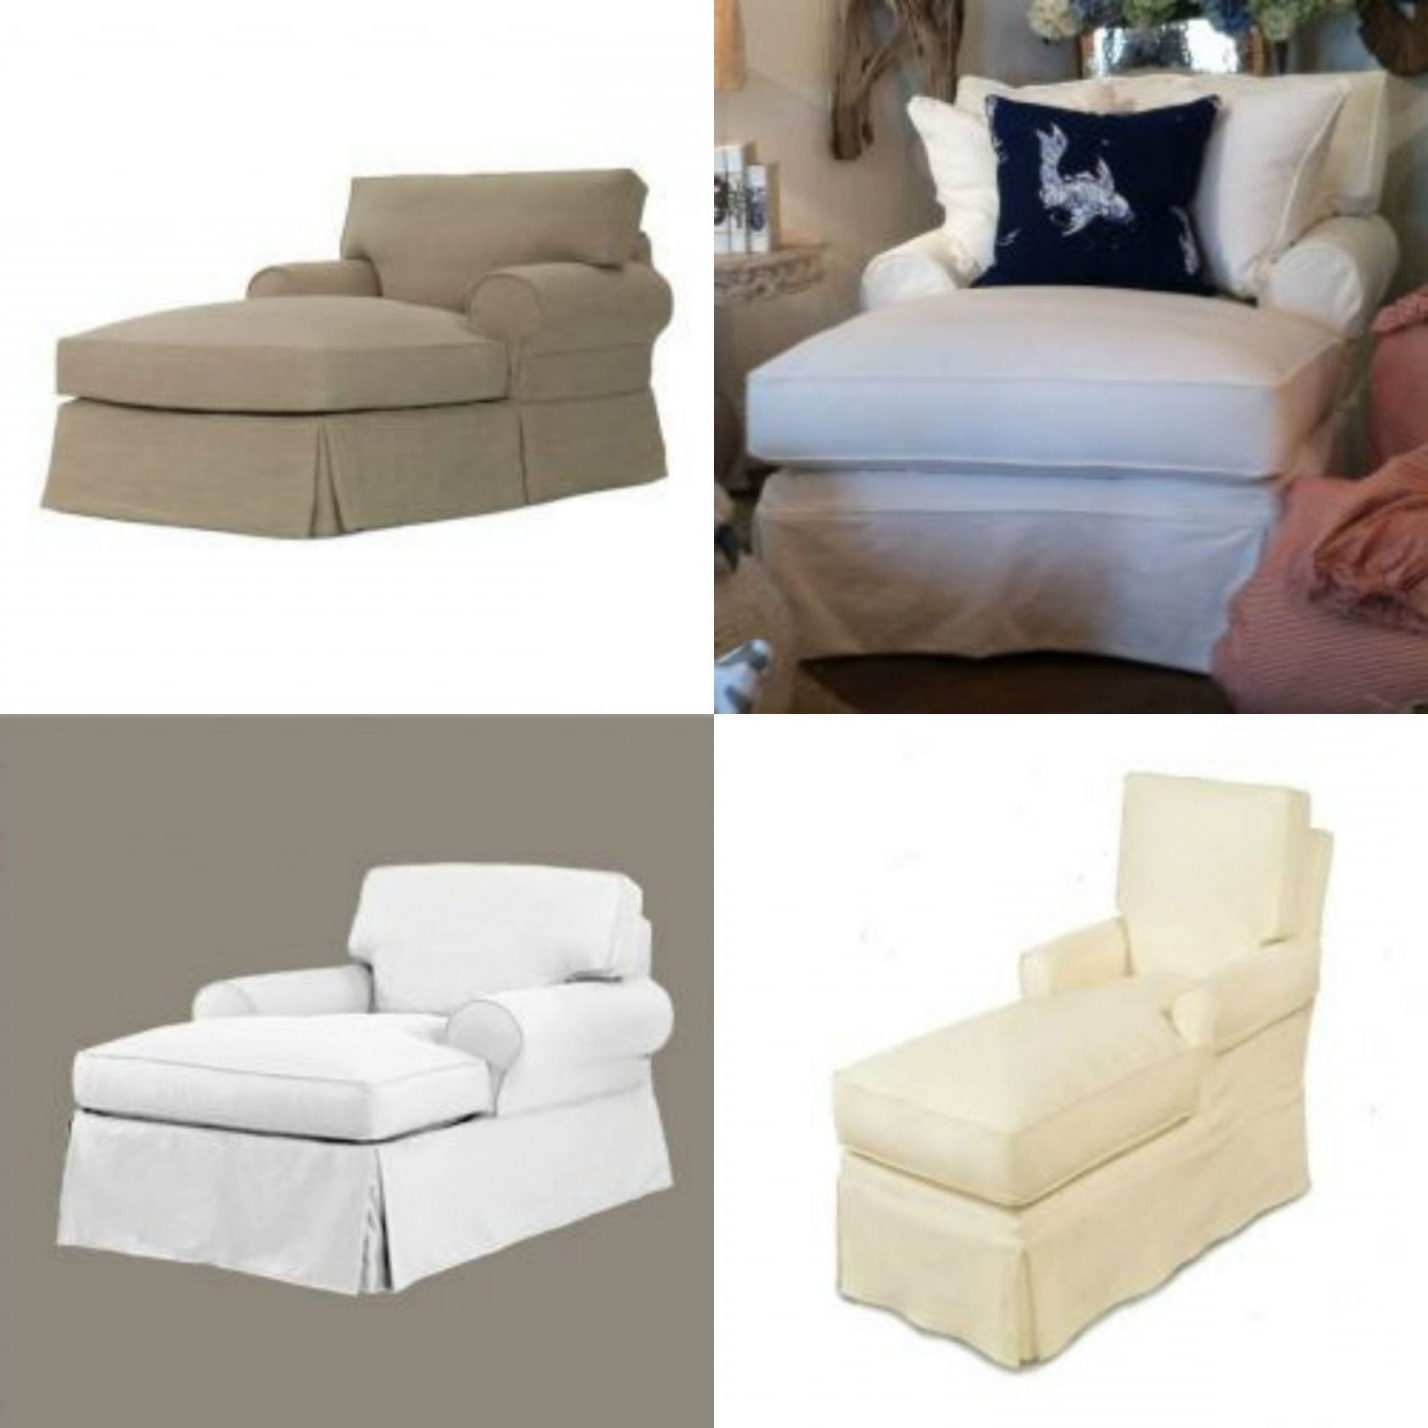 Most Recent Slipcovers For Chaise Lounge Pertaining To Slipcovers For Chaise Lounge Sofa (View 8 of 15)